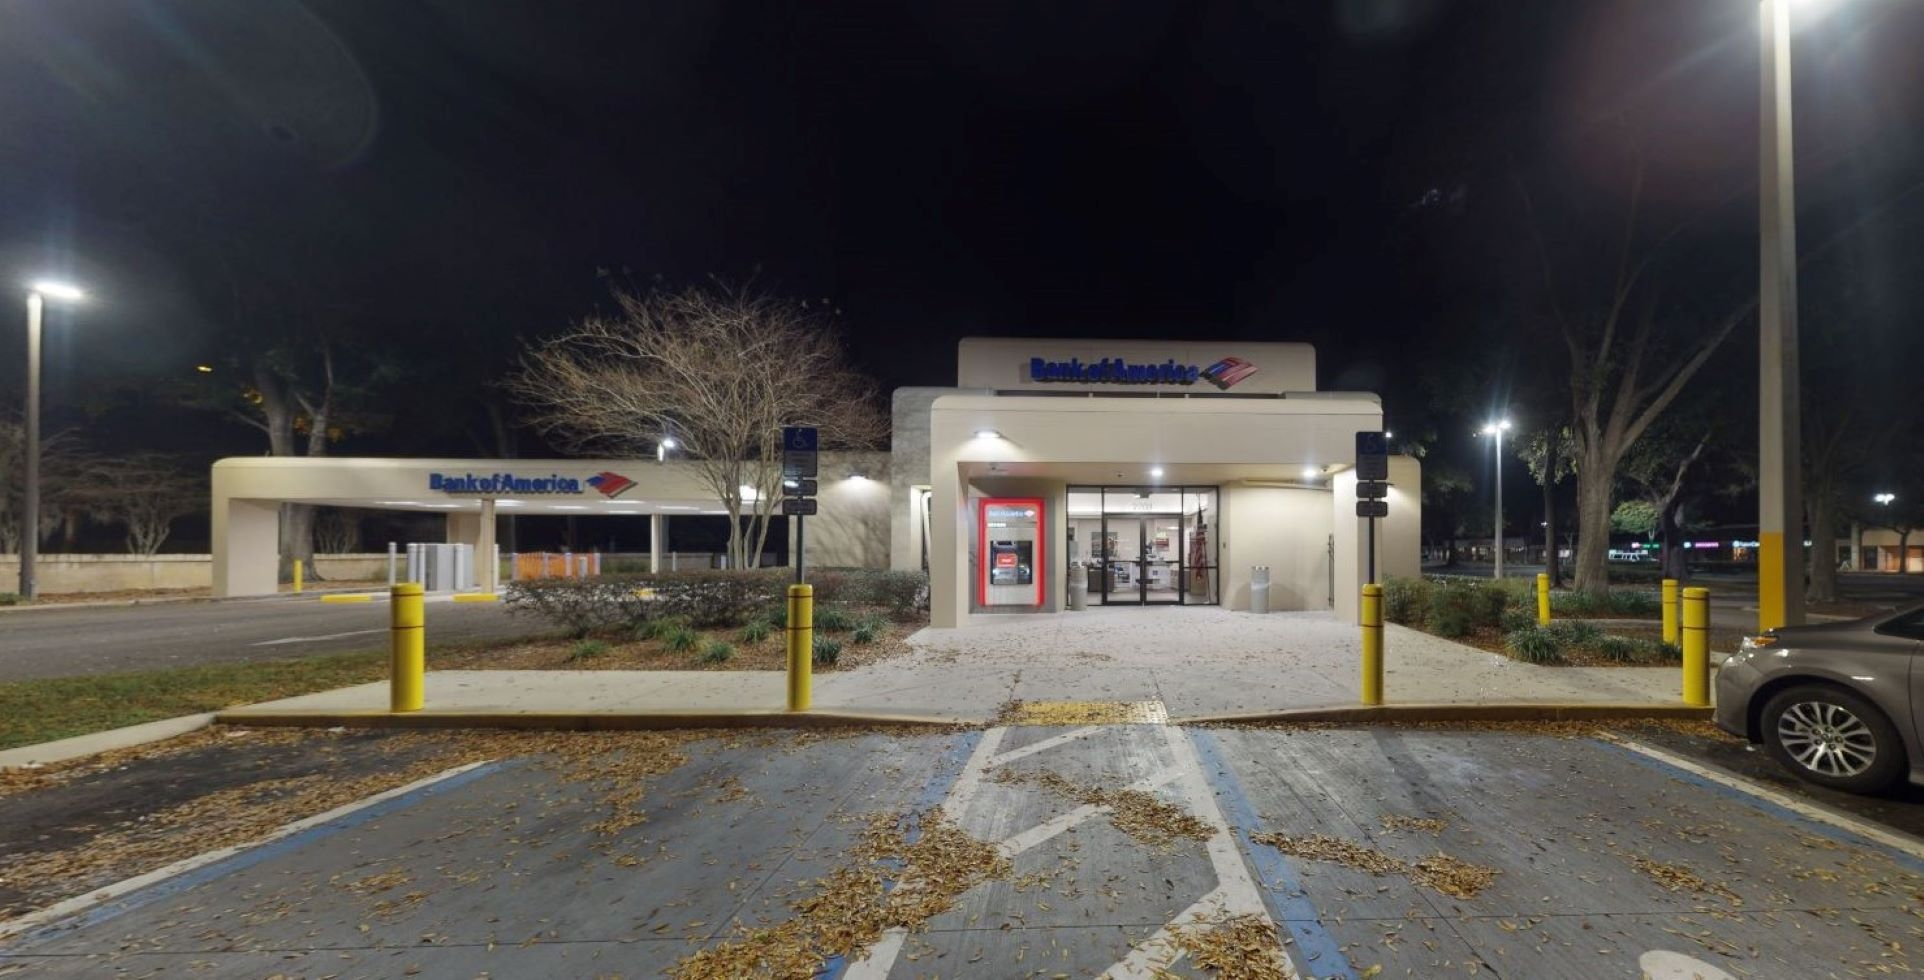 Bank of America financial center with drive-thru ATM | 2701 S Conway Rd, Orlando, FL 32812